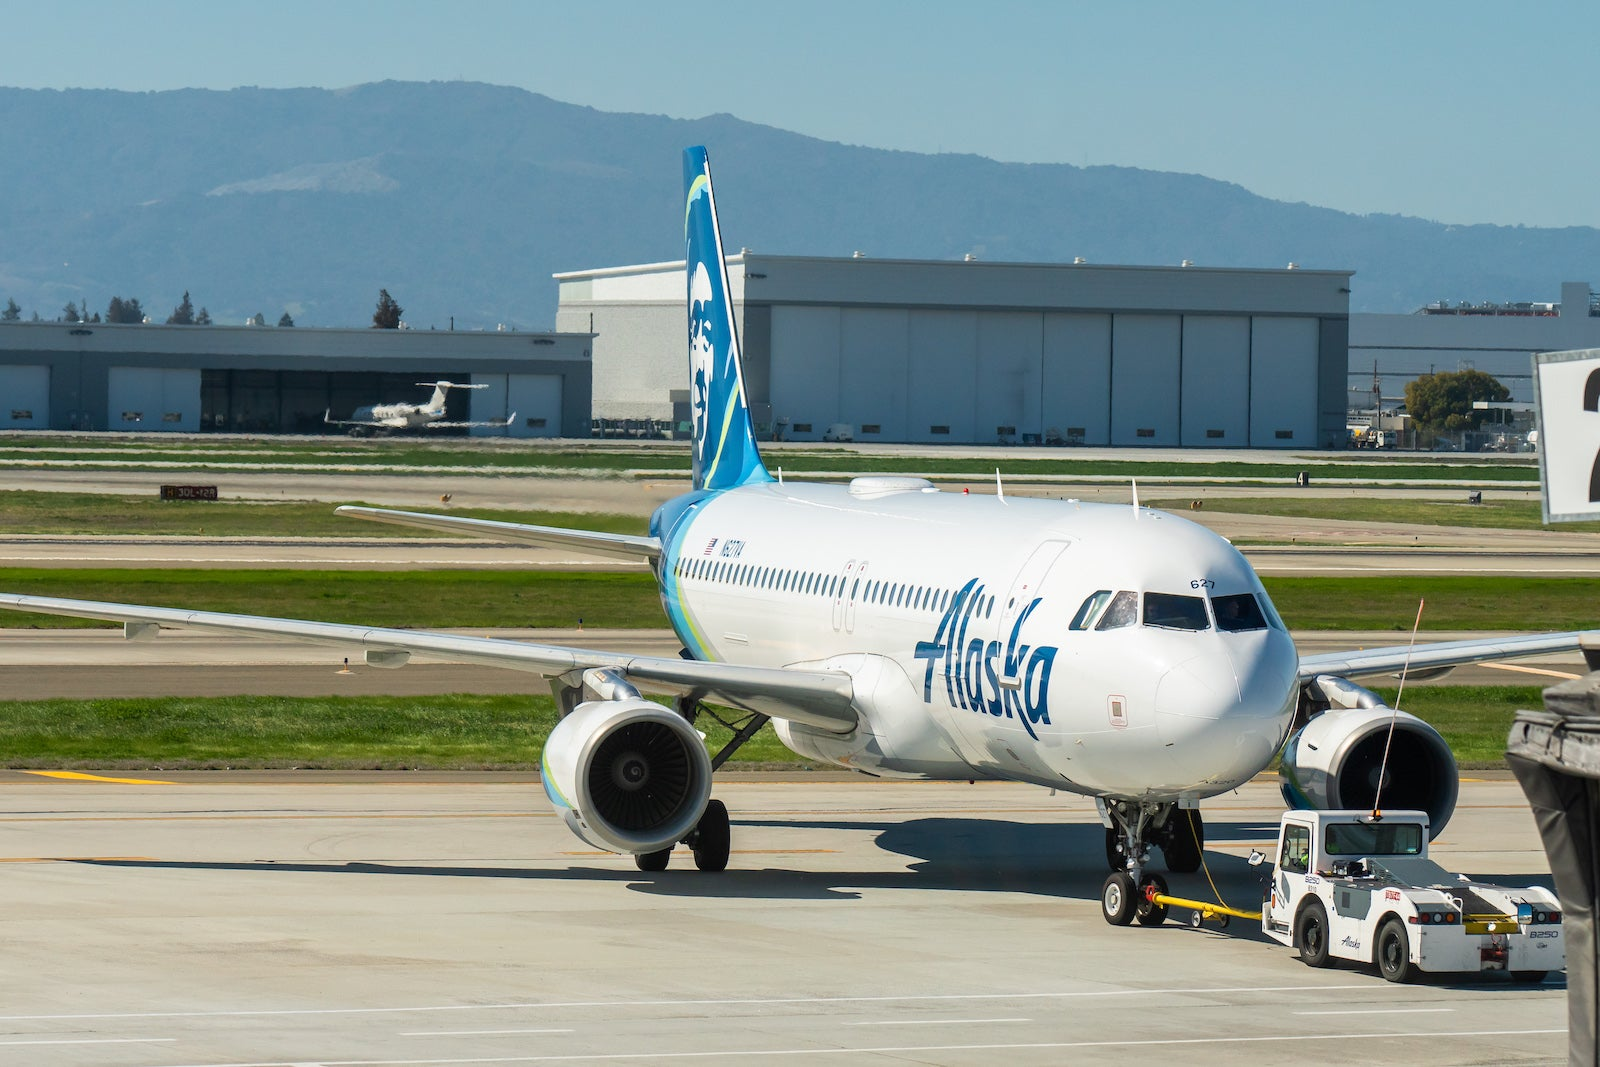 Things to do this month before Alaska Airlines joins Oneworld